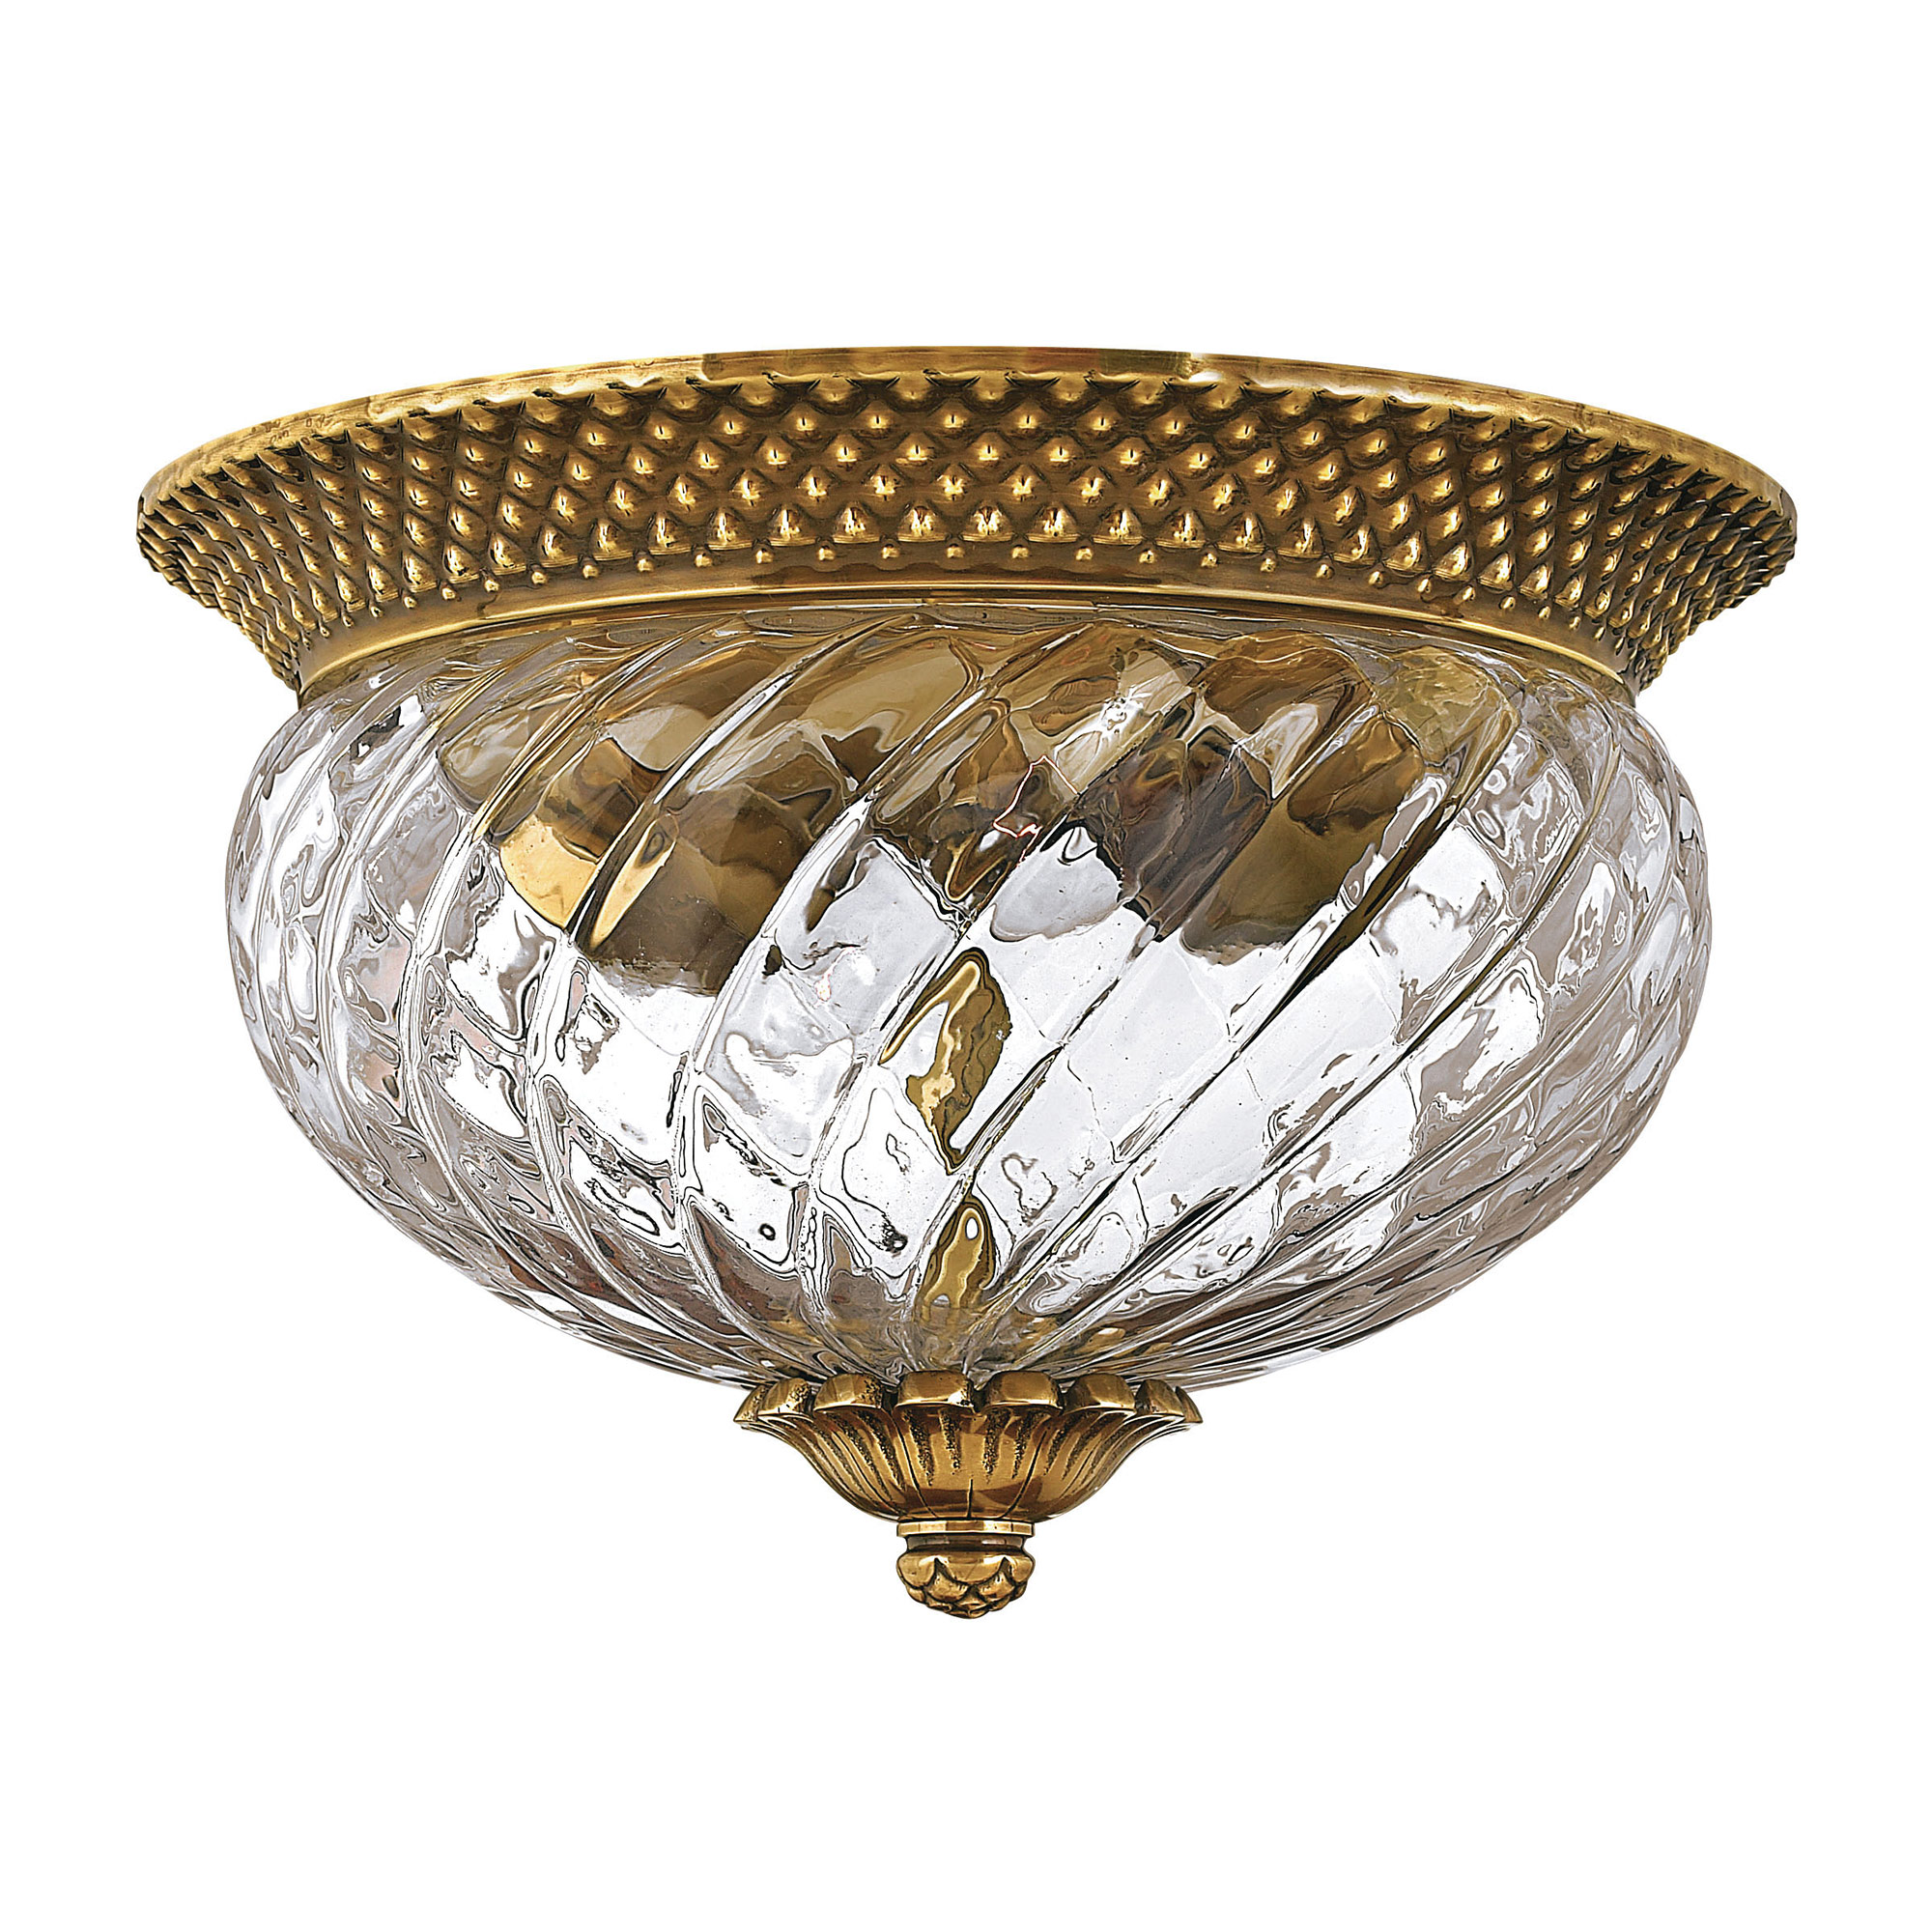 12 inch ceiling light fixture by hinkley lighting 4102bb plantation 12 inch ceiling light fixture by hinkley lighting 4102bb arubaitofo Gallery